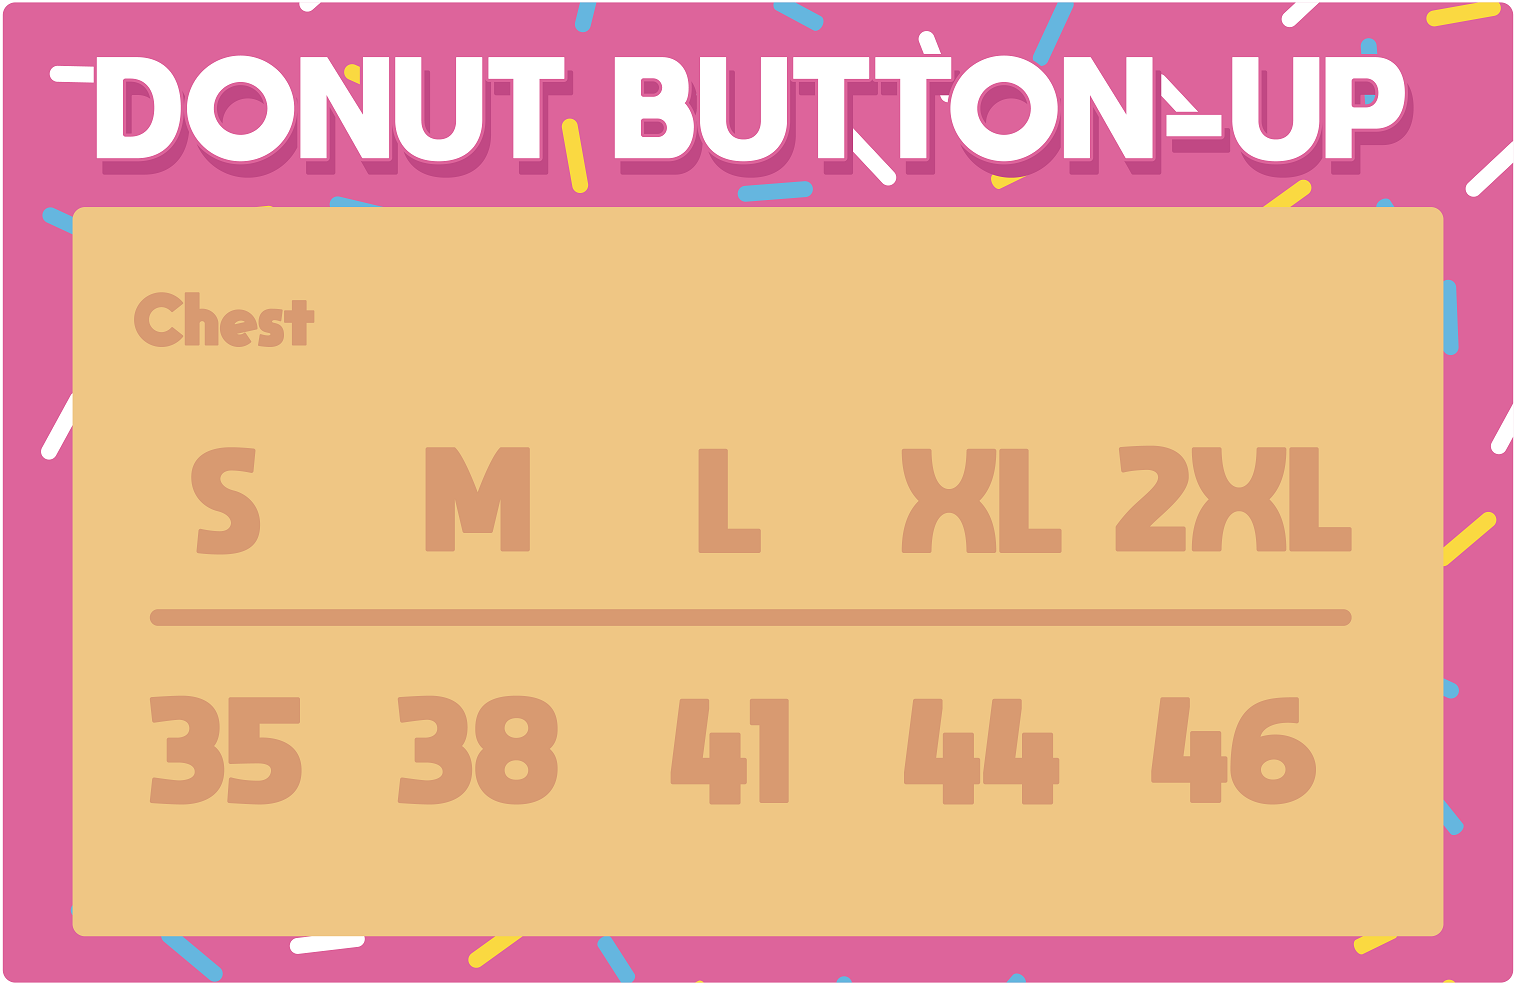 BUTTON UP SIZE CHART-01.png